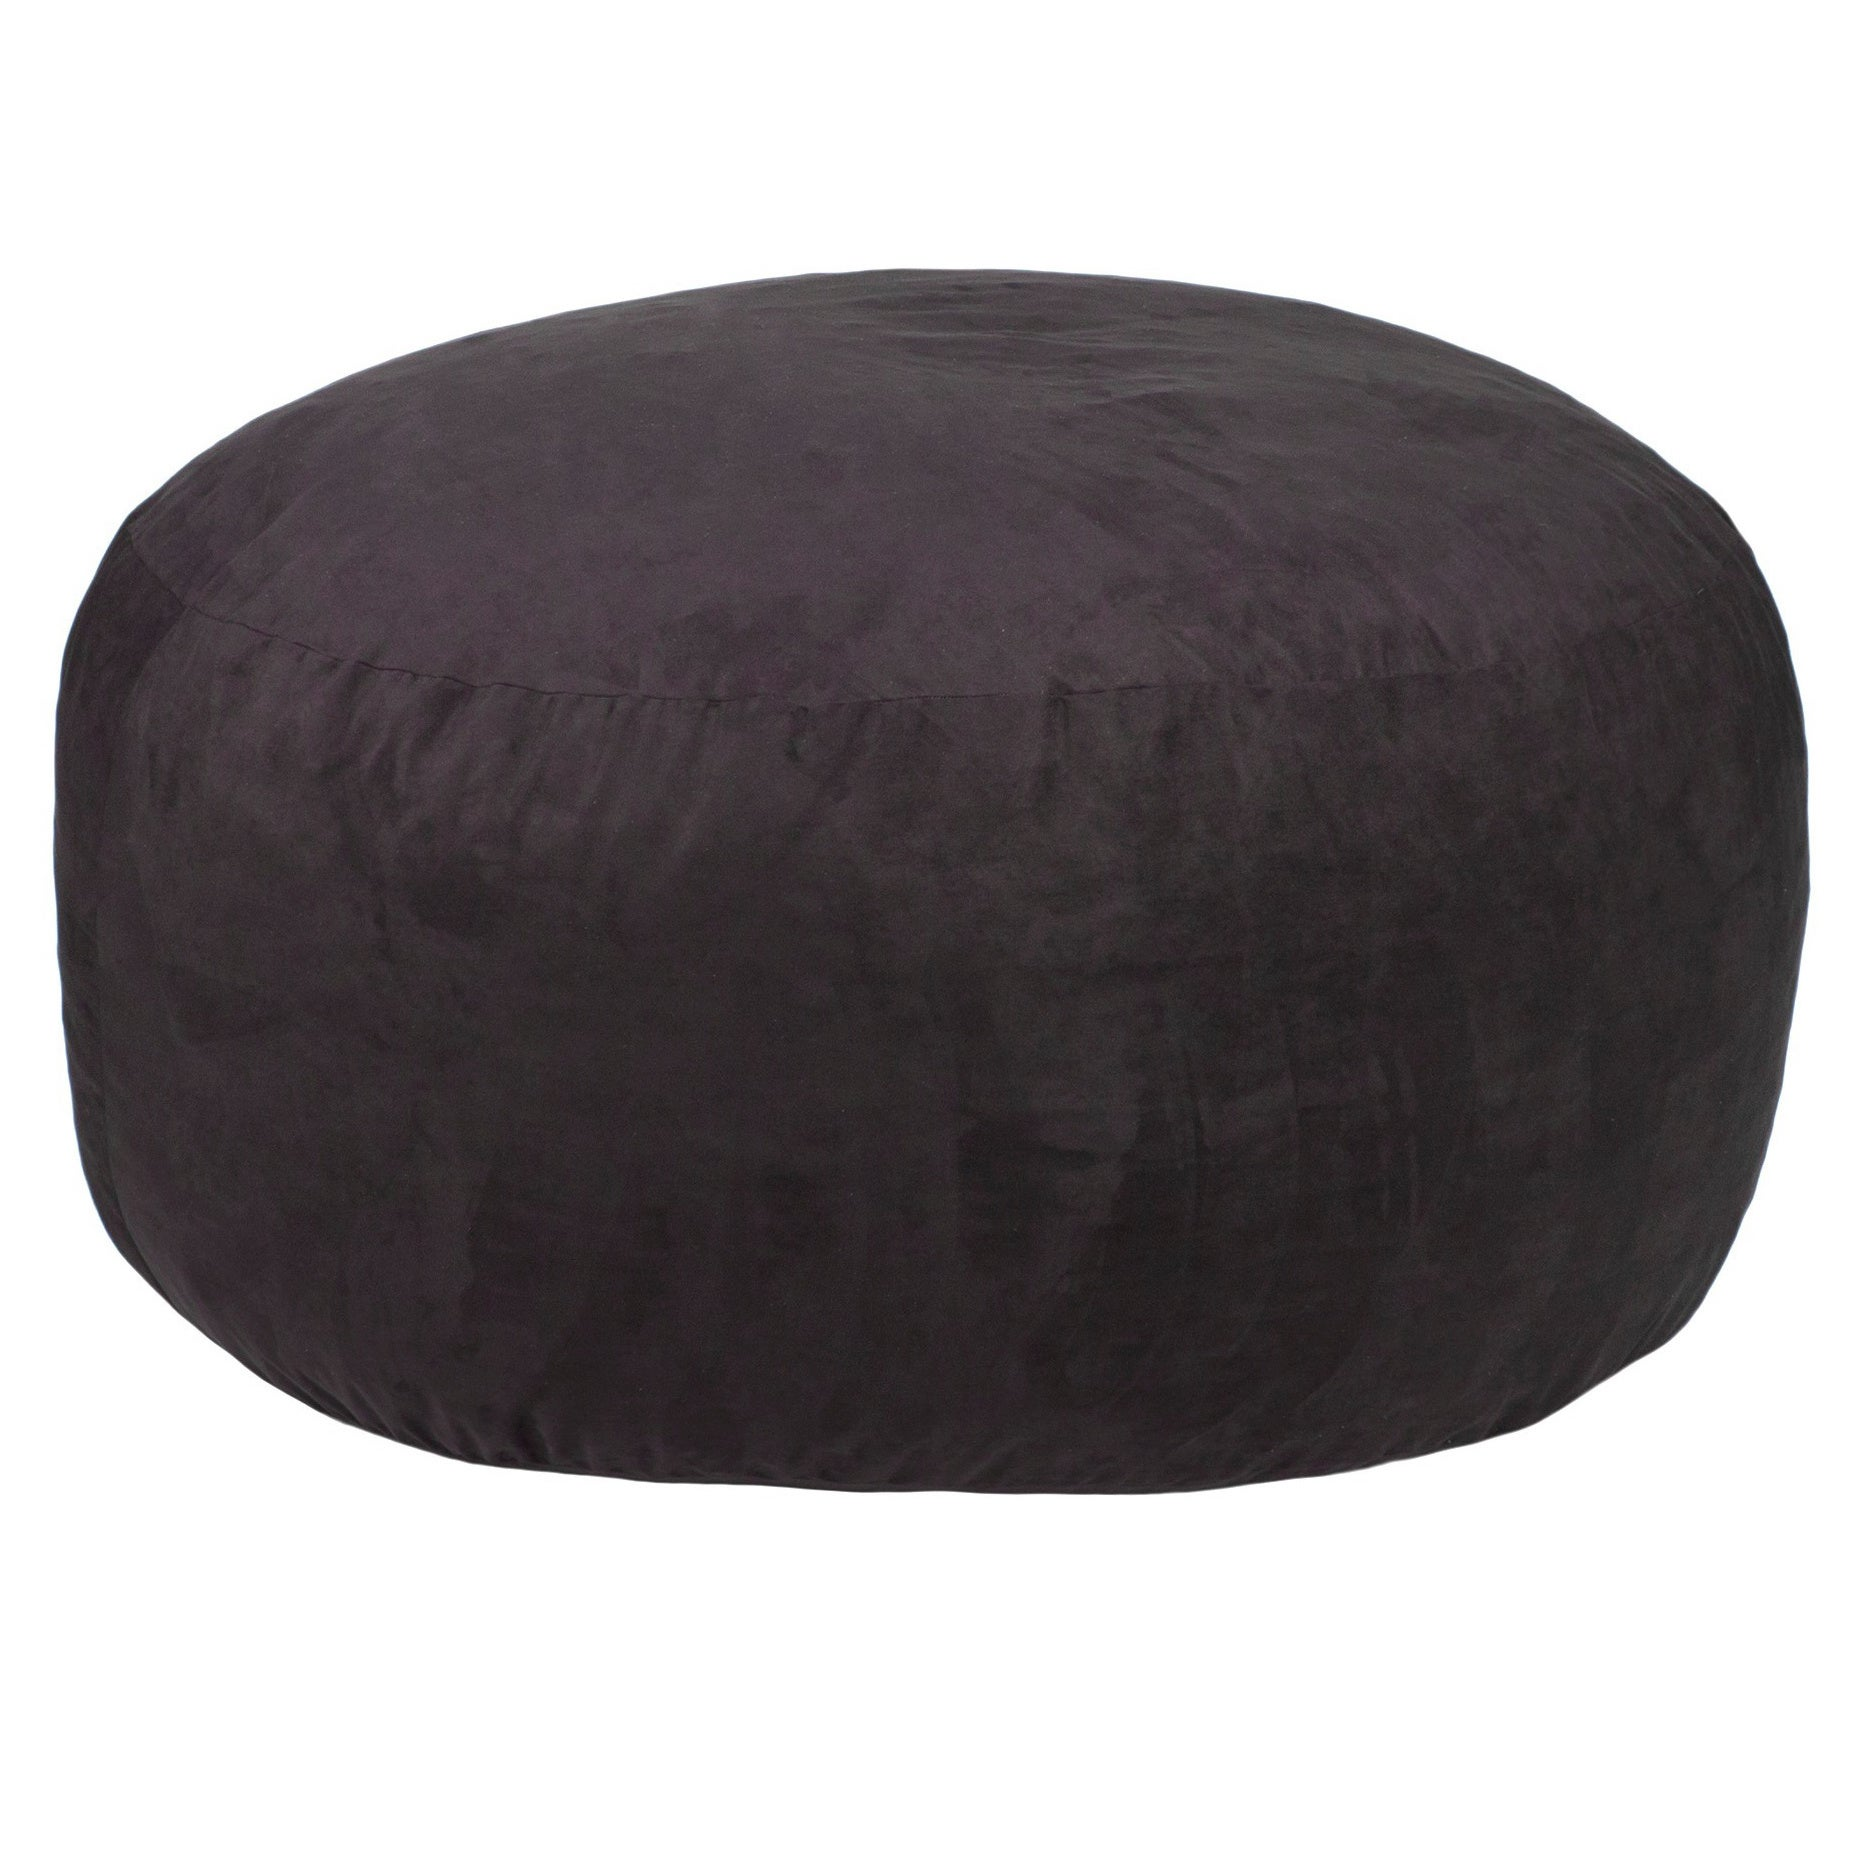 Gold Medal Comfort Cloud 4-foot Foam Bean Bag (Black)